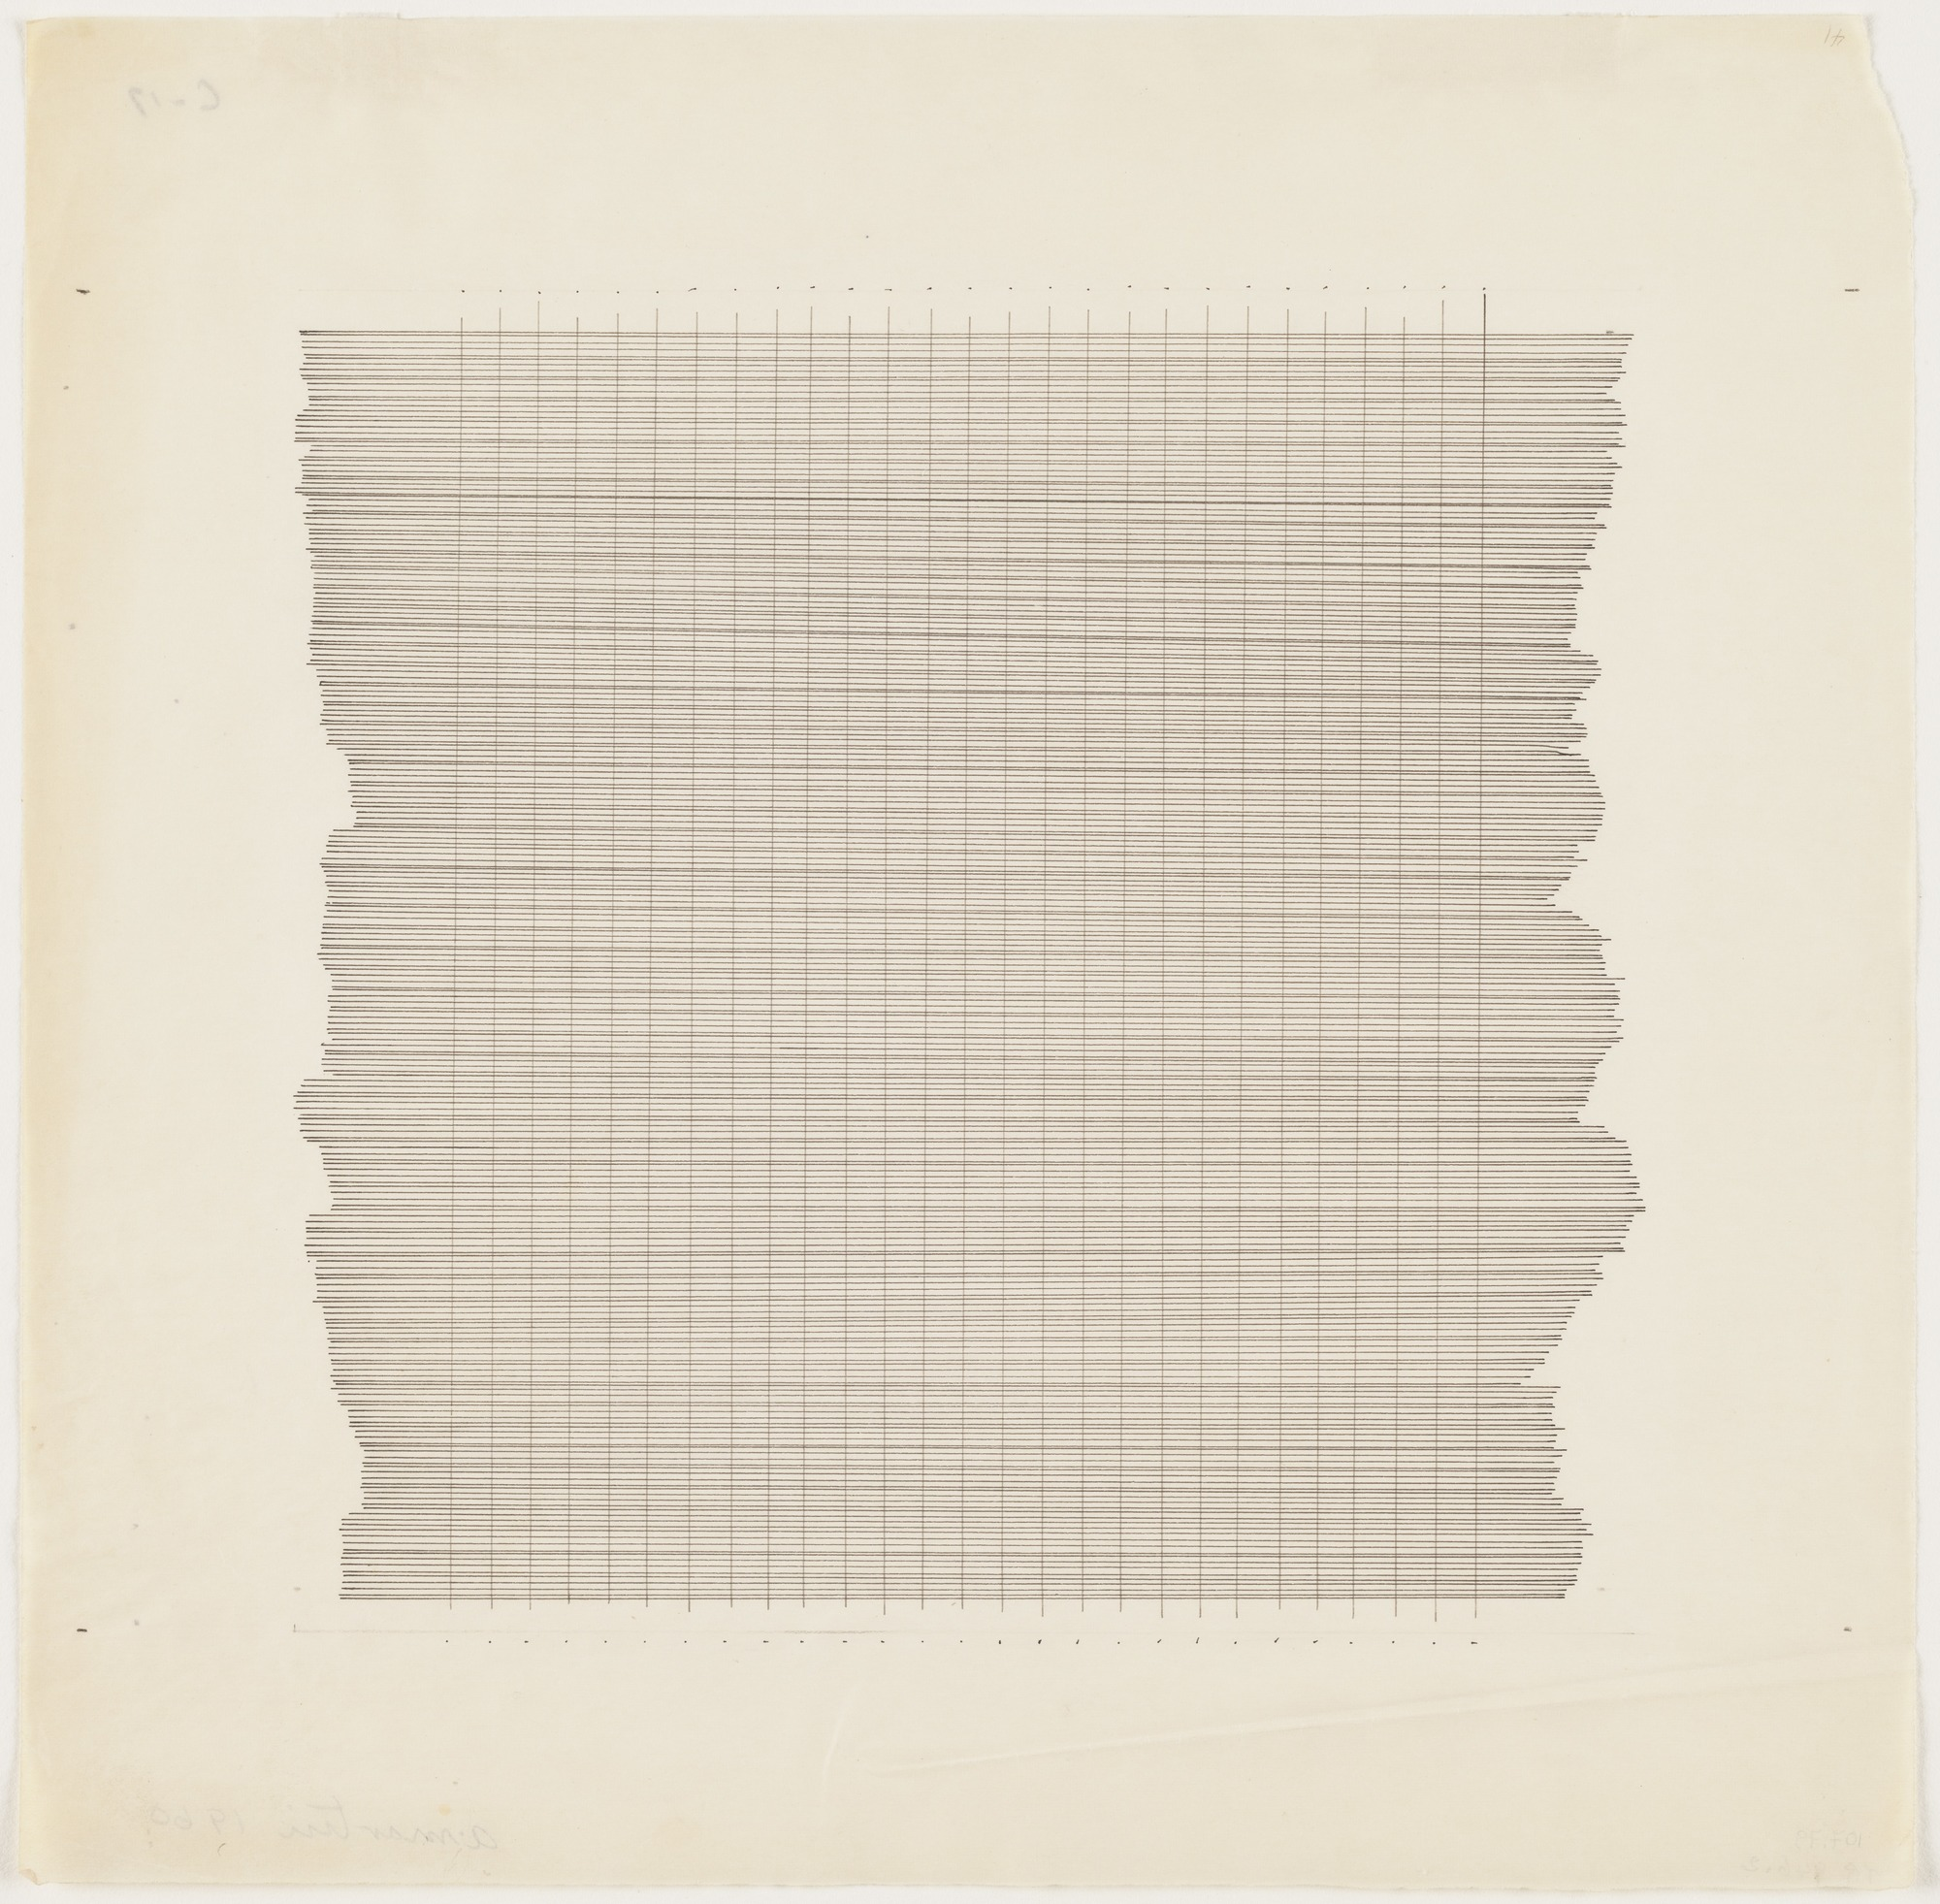 agnes-martin-untitled-16-1960